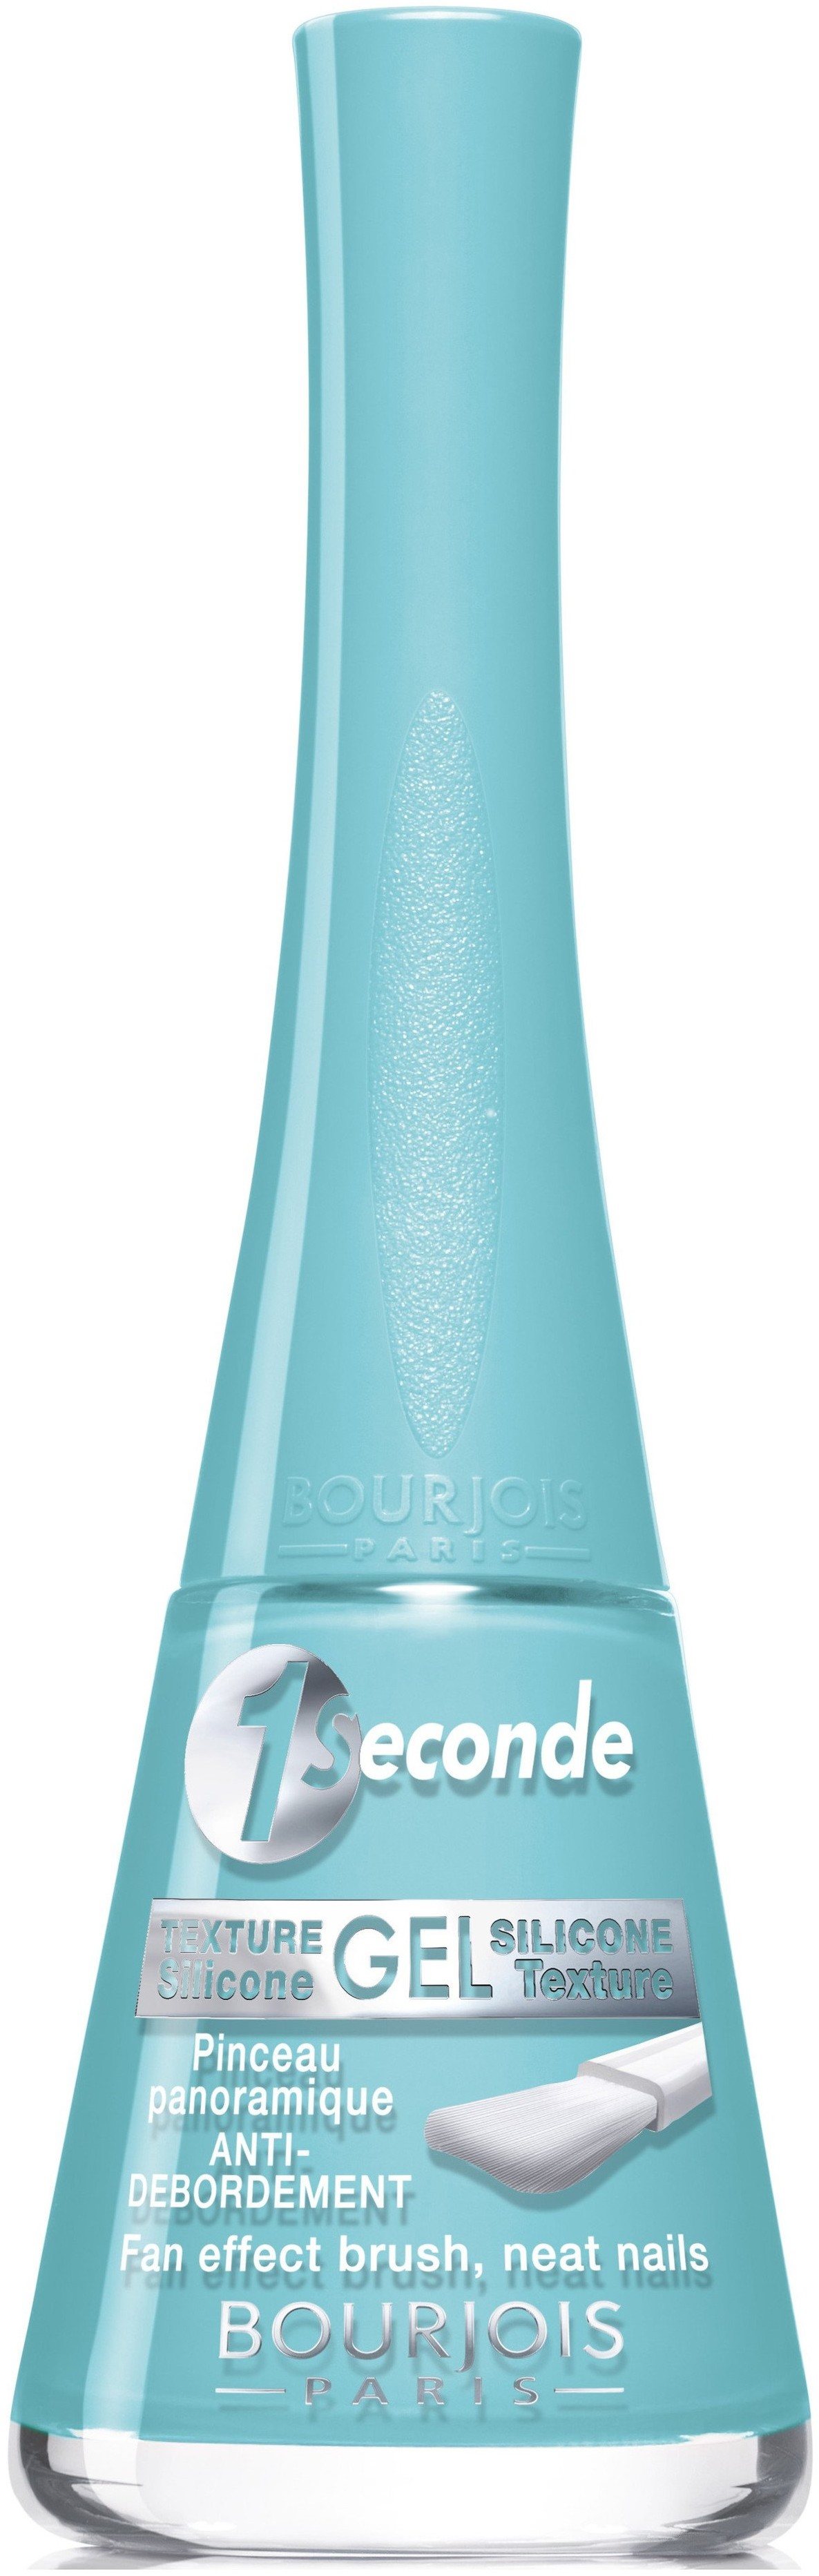 Bourjois 1 Seconde Nail Enamel lakier do paznokci 26 Blue No Blues 9ml